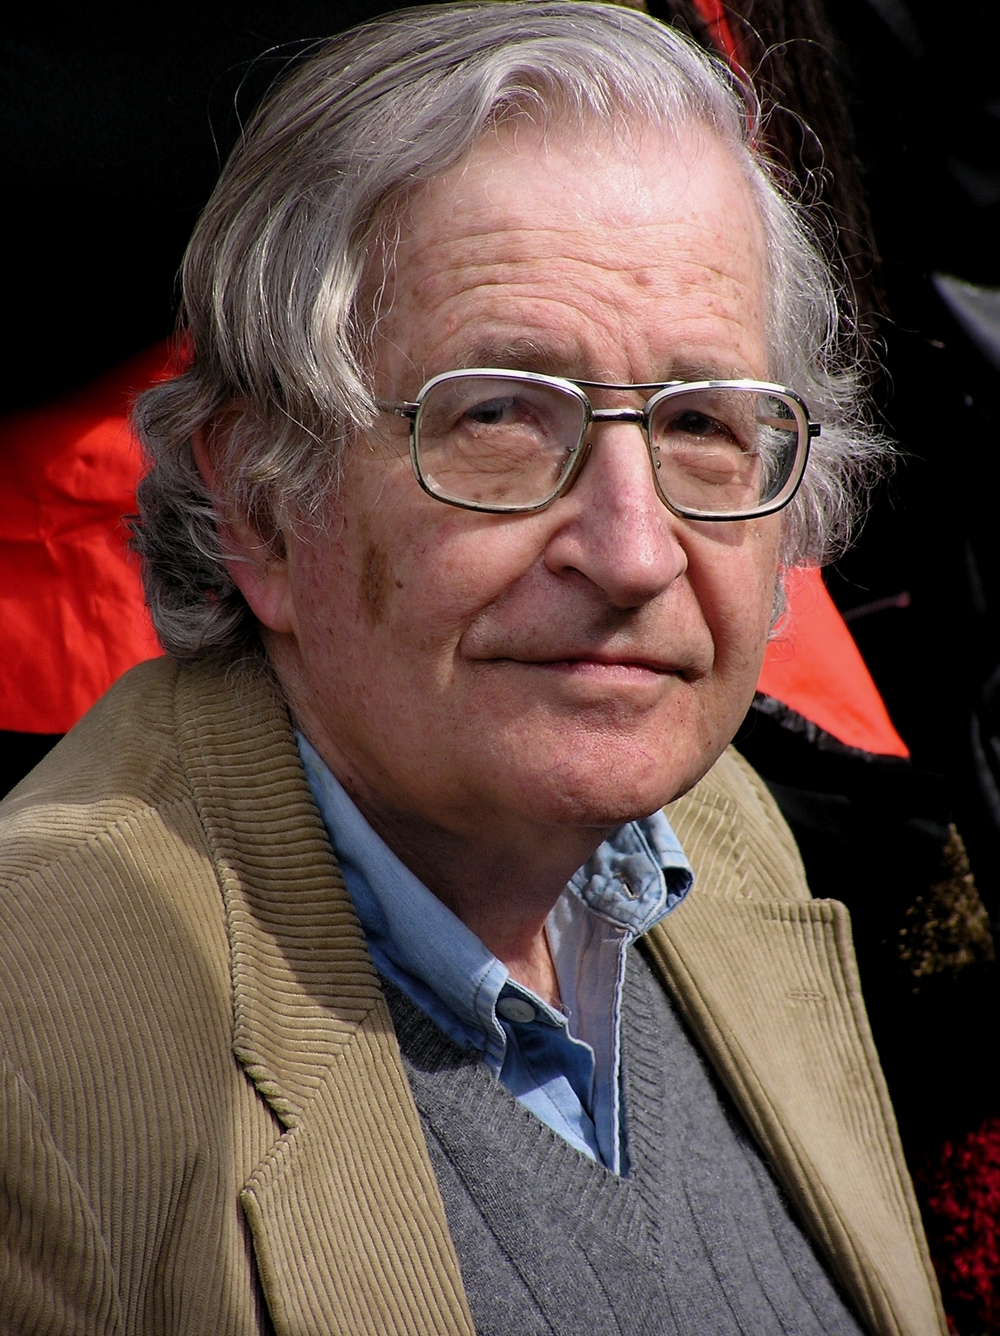 Noam Chomsky. Credit: Wikimedia Commons.